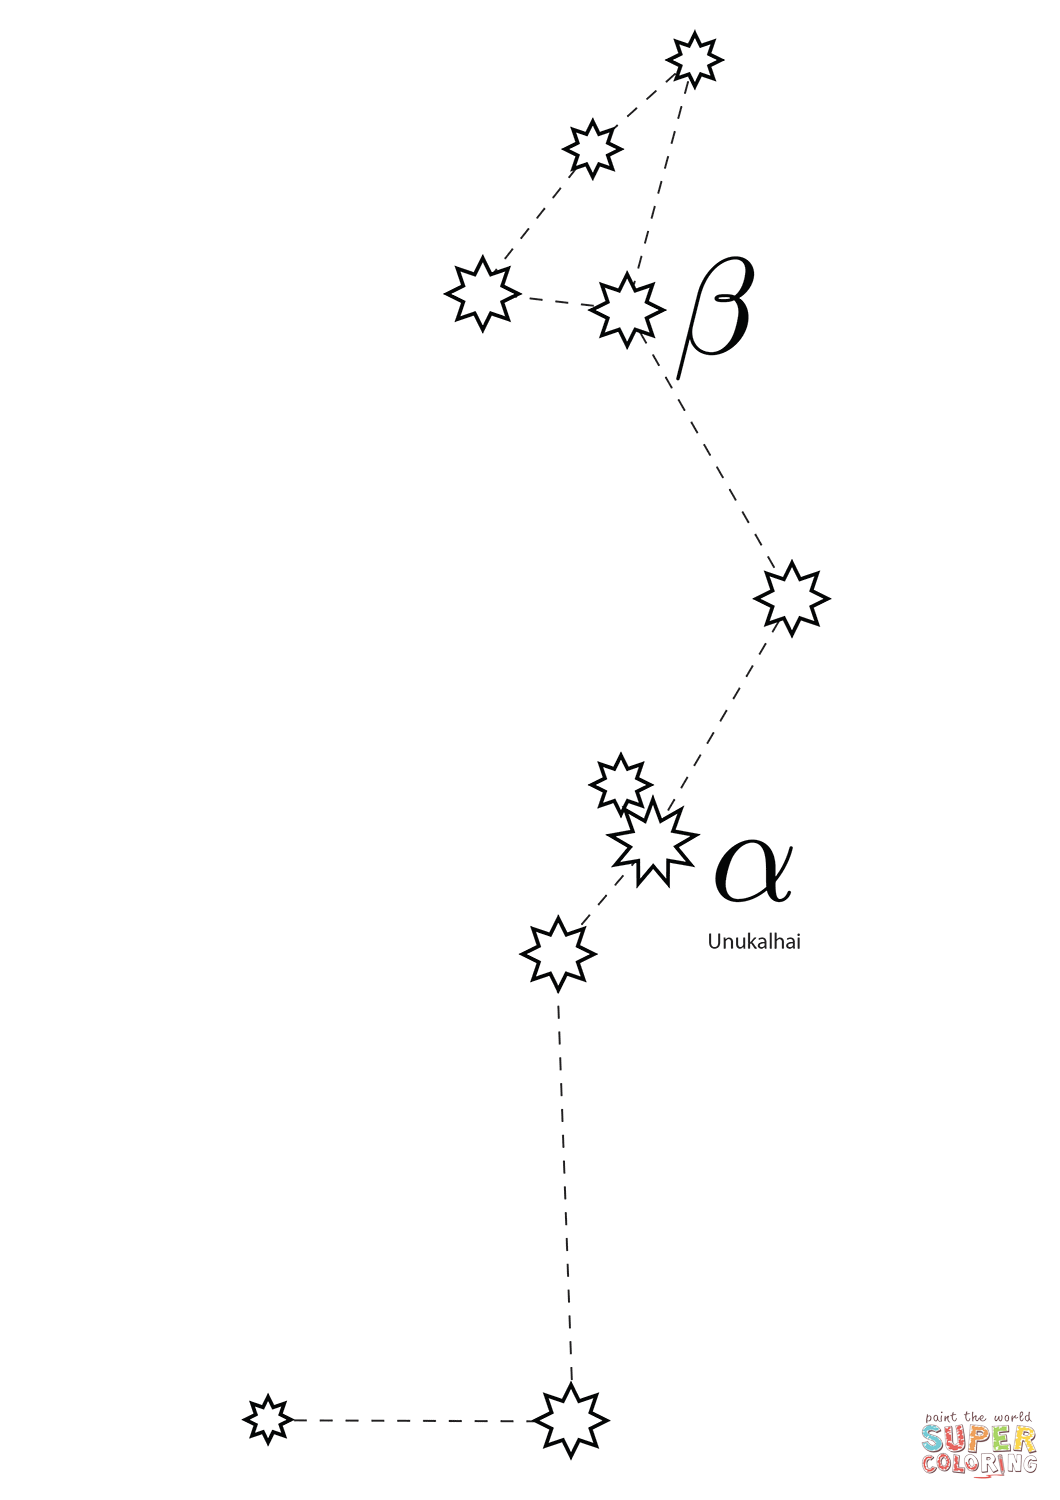 Serpens Constellation Coloring Page